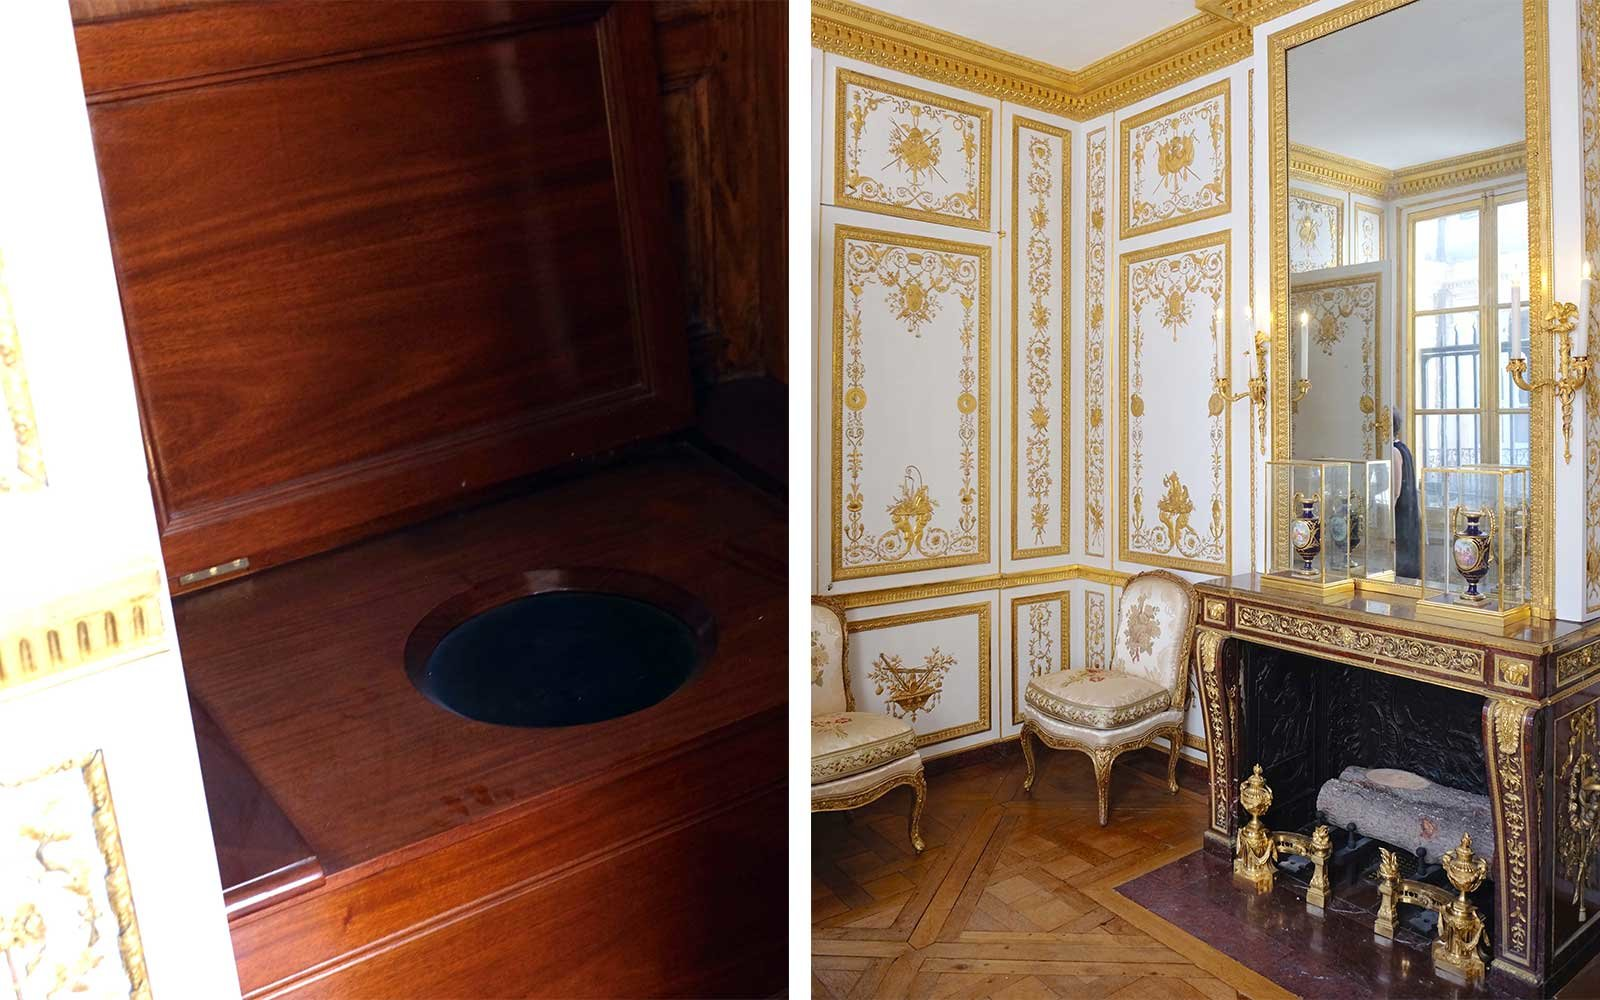 King's Water Closet in Versailles